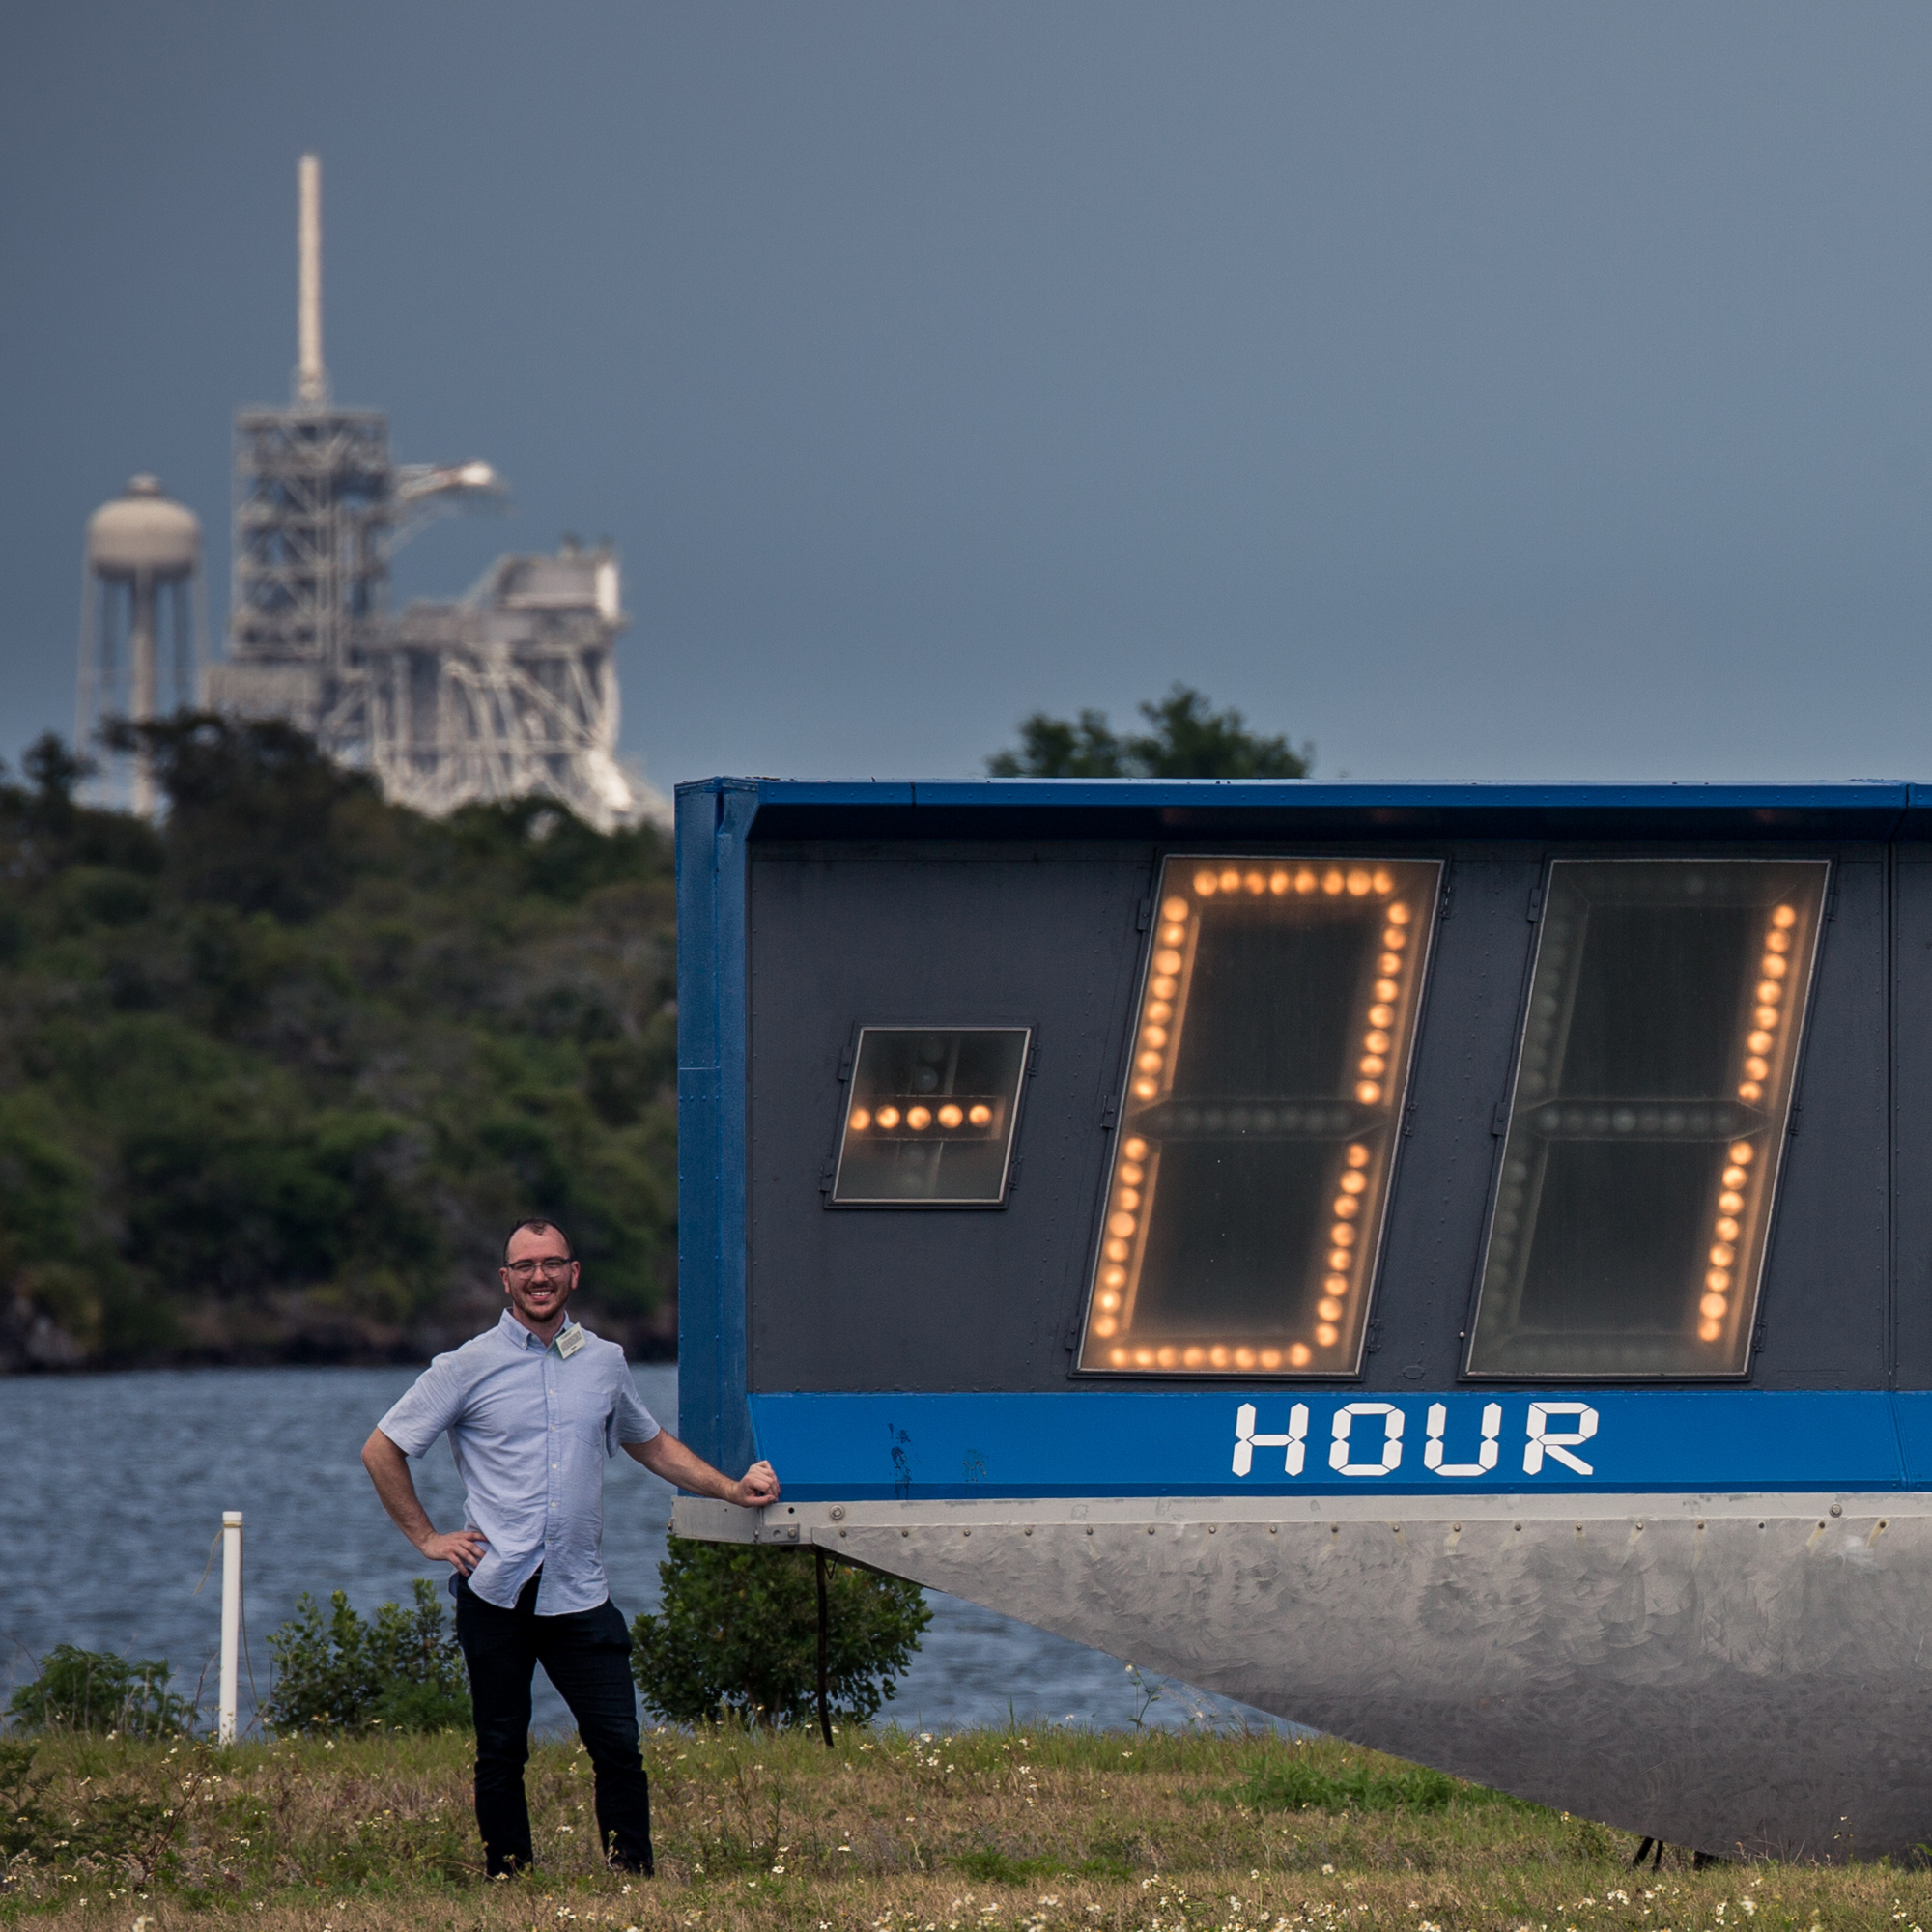 Countdown Clock - Kennedy Space Center - Florida vintage historic